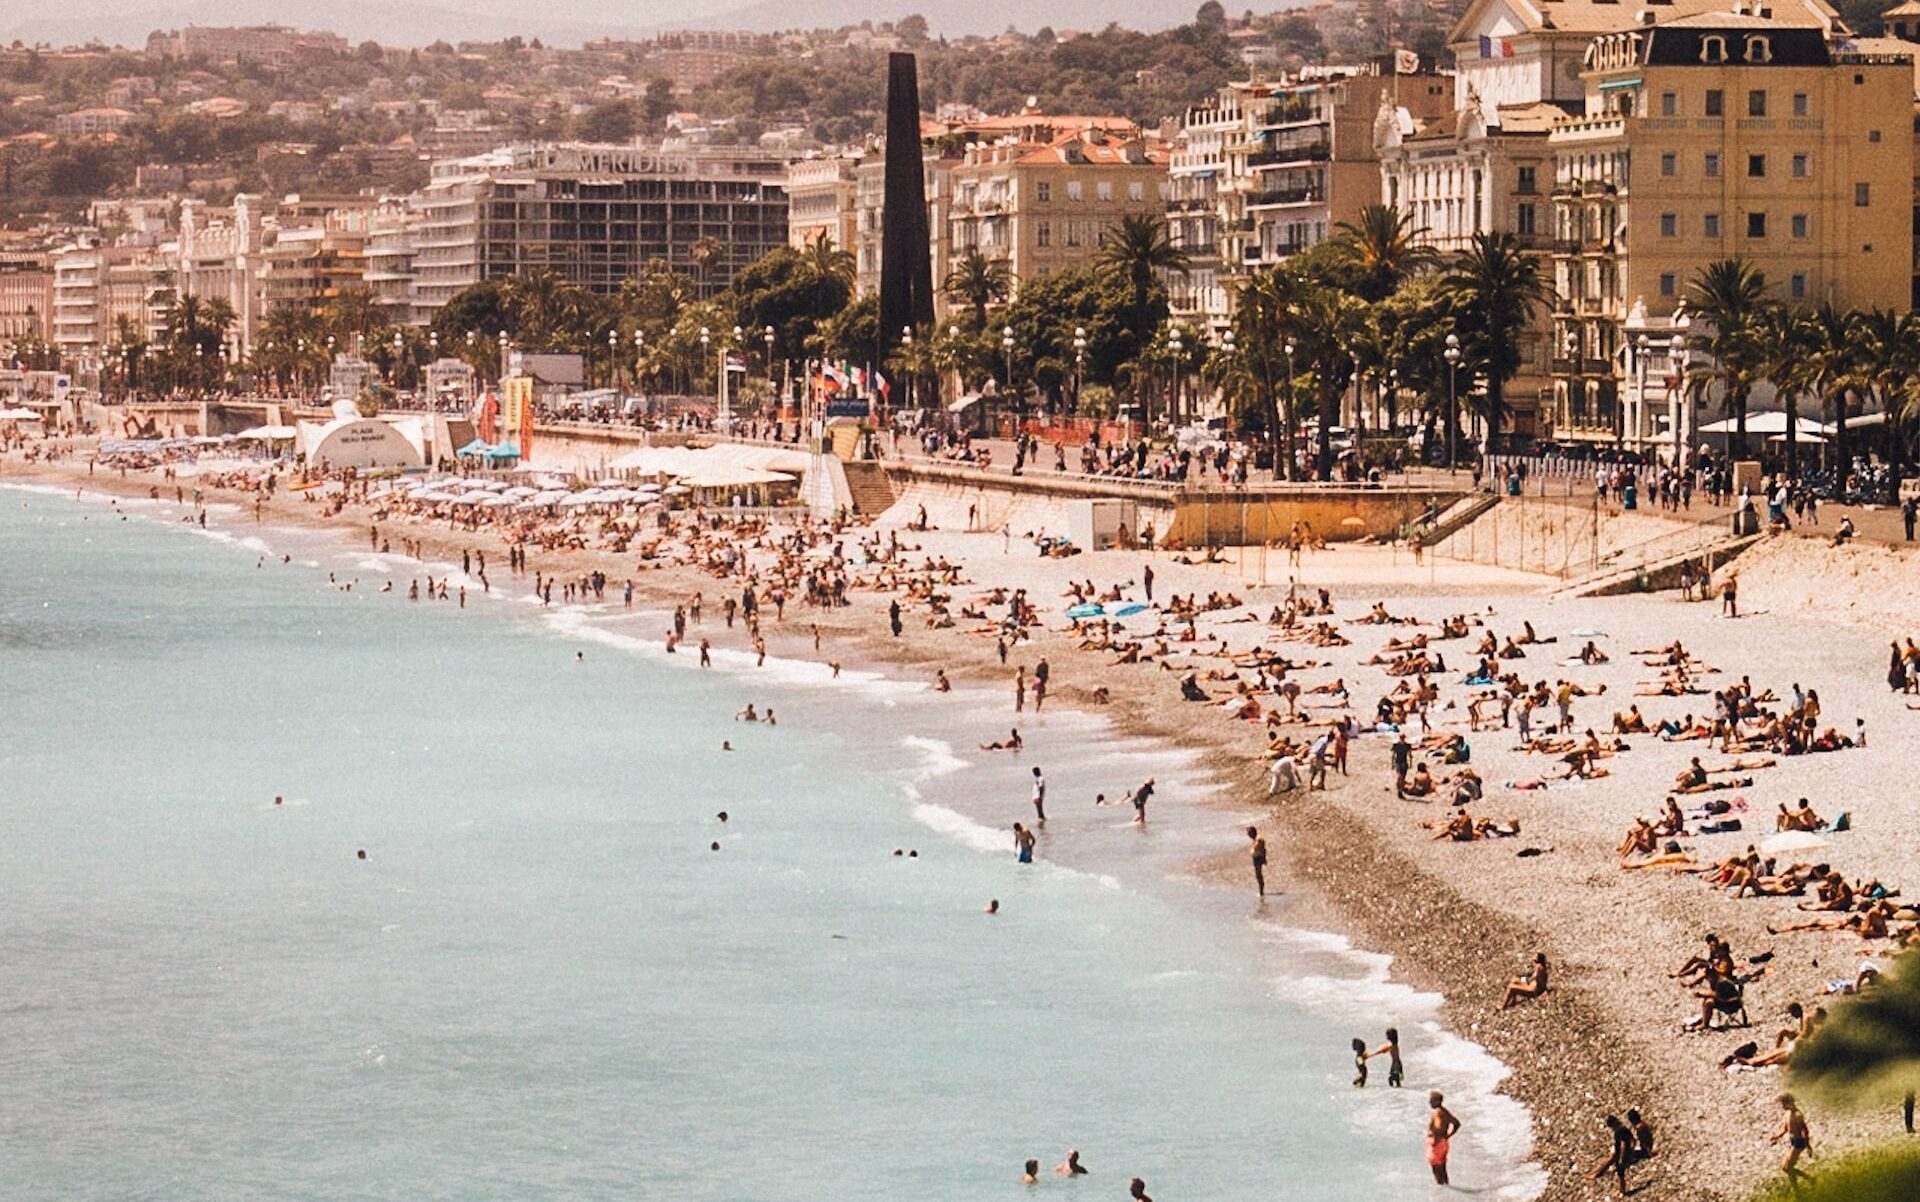 People on a beach in Nice